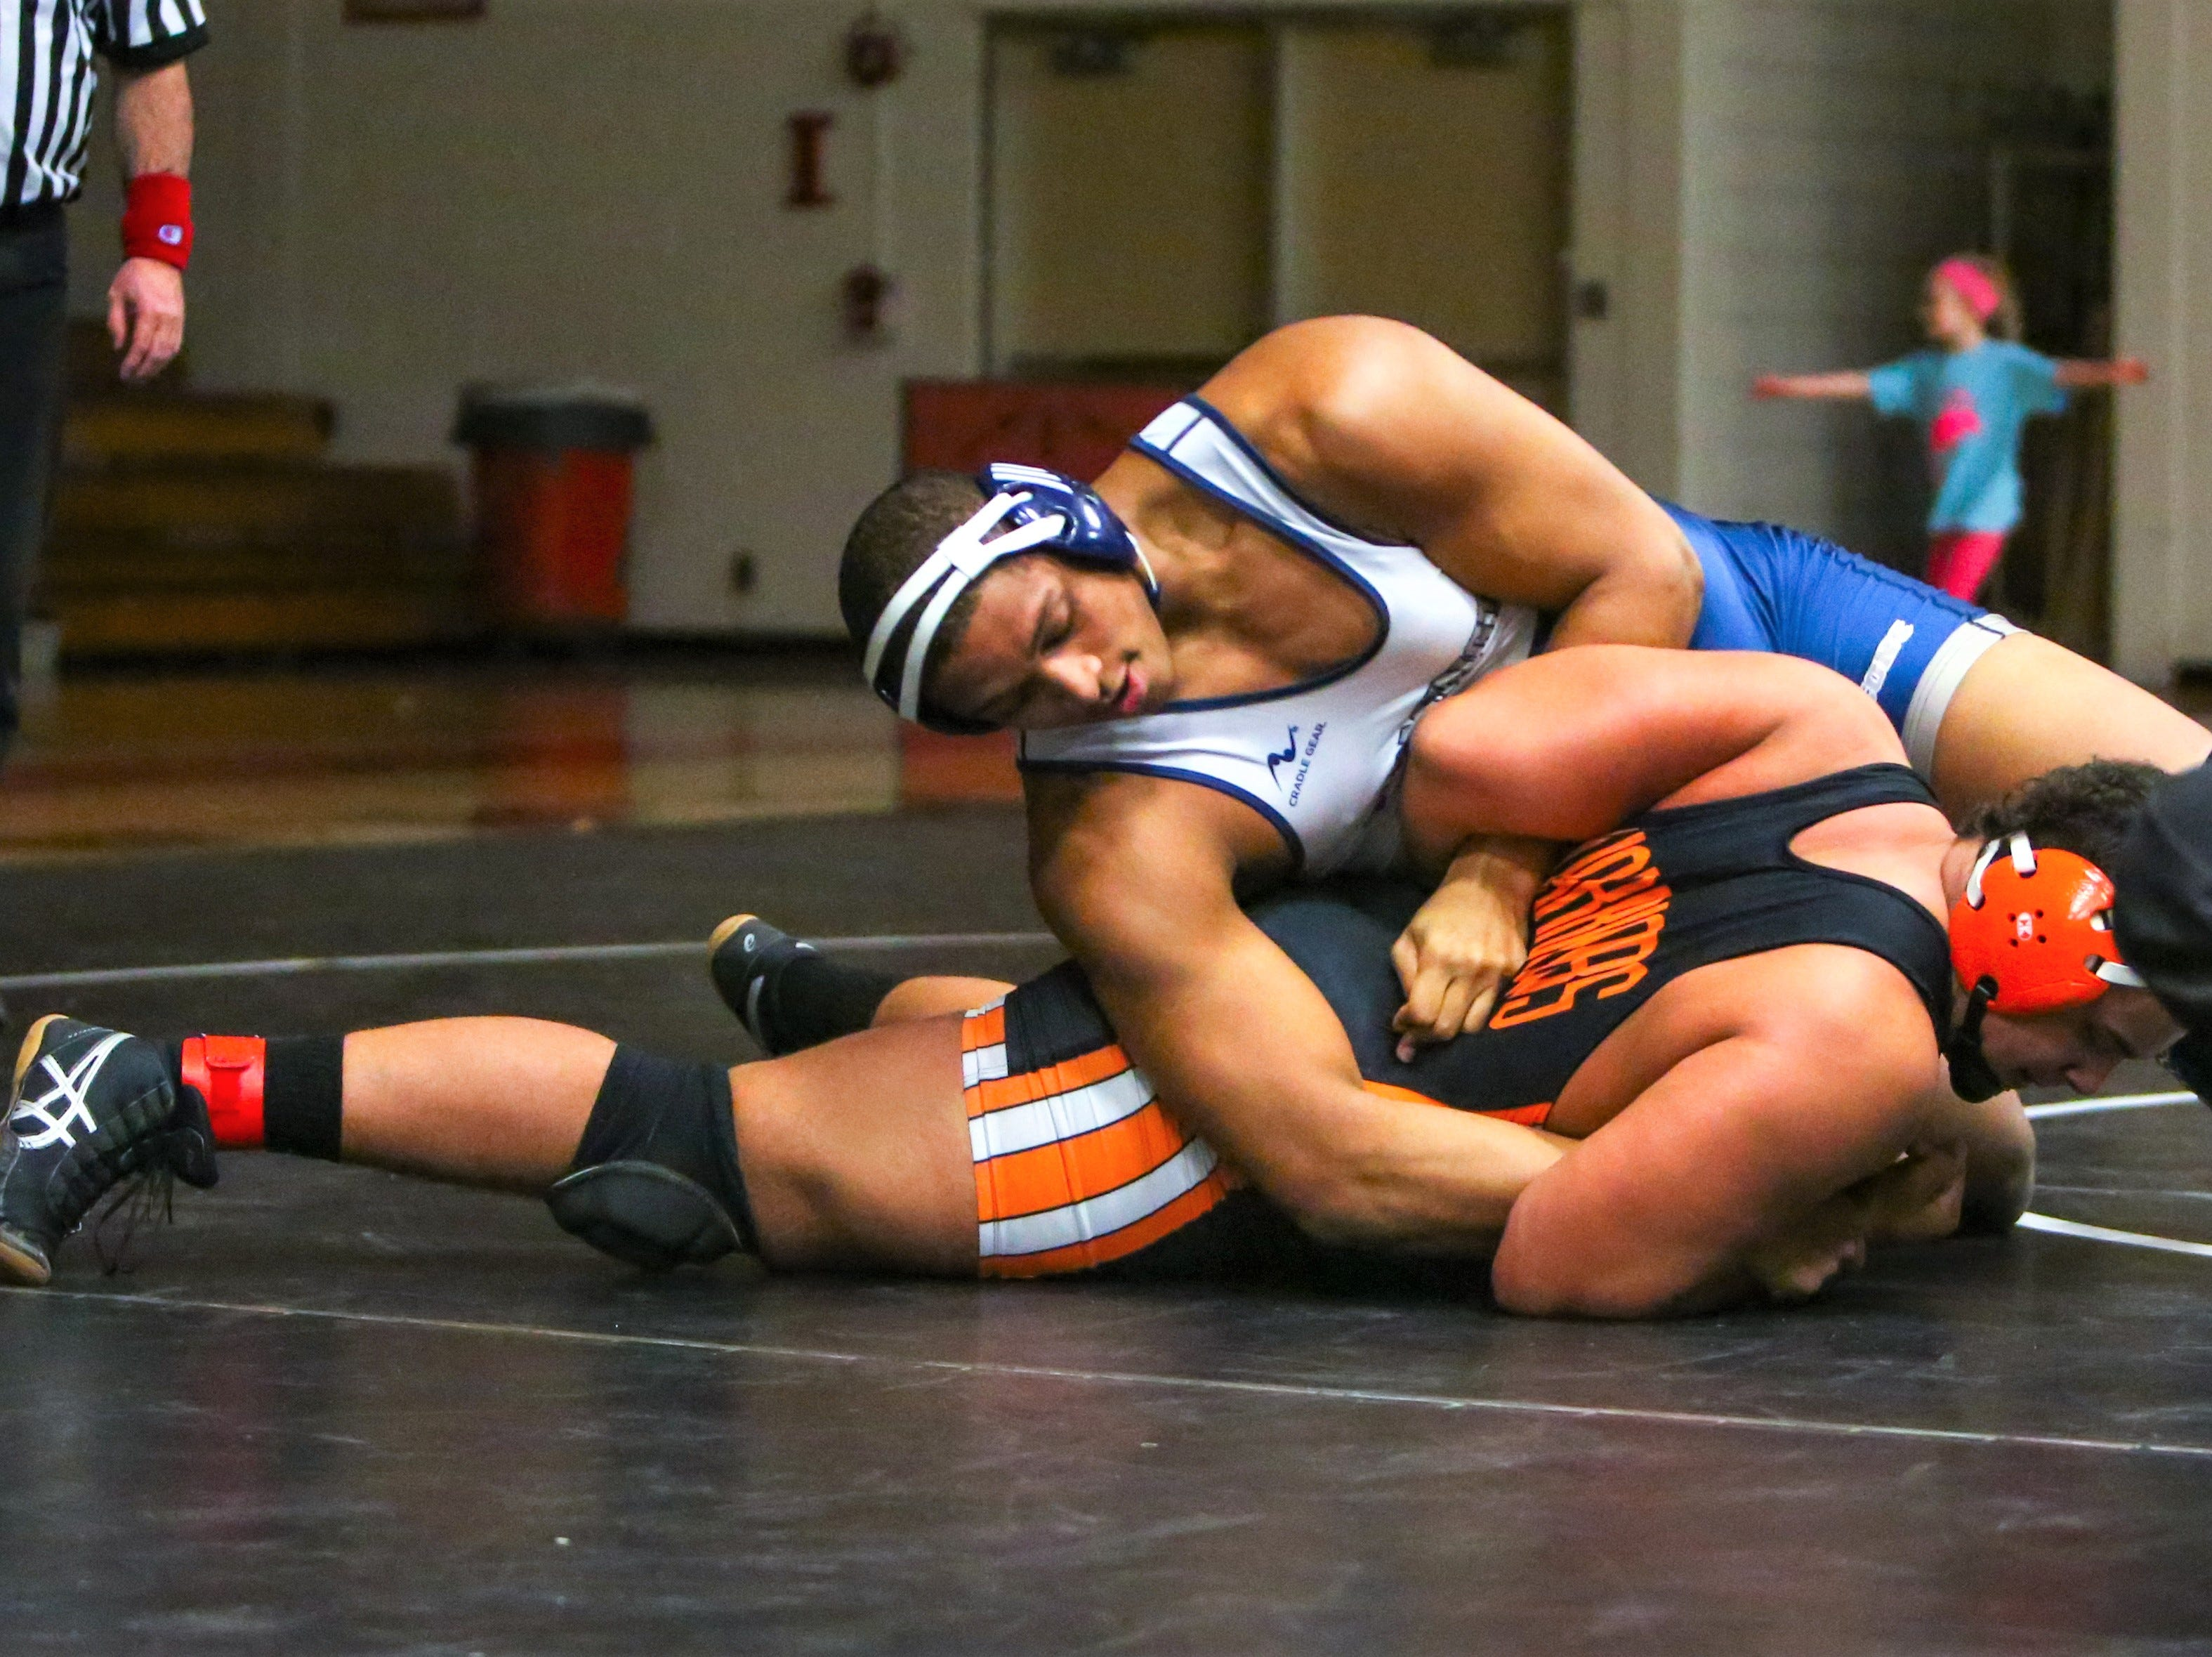 Farmington's Donovan King (top) takes control against Brother Rice's Daniel Jordan in the 285-pound final.